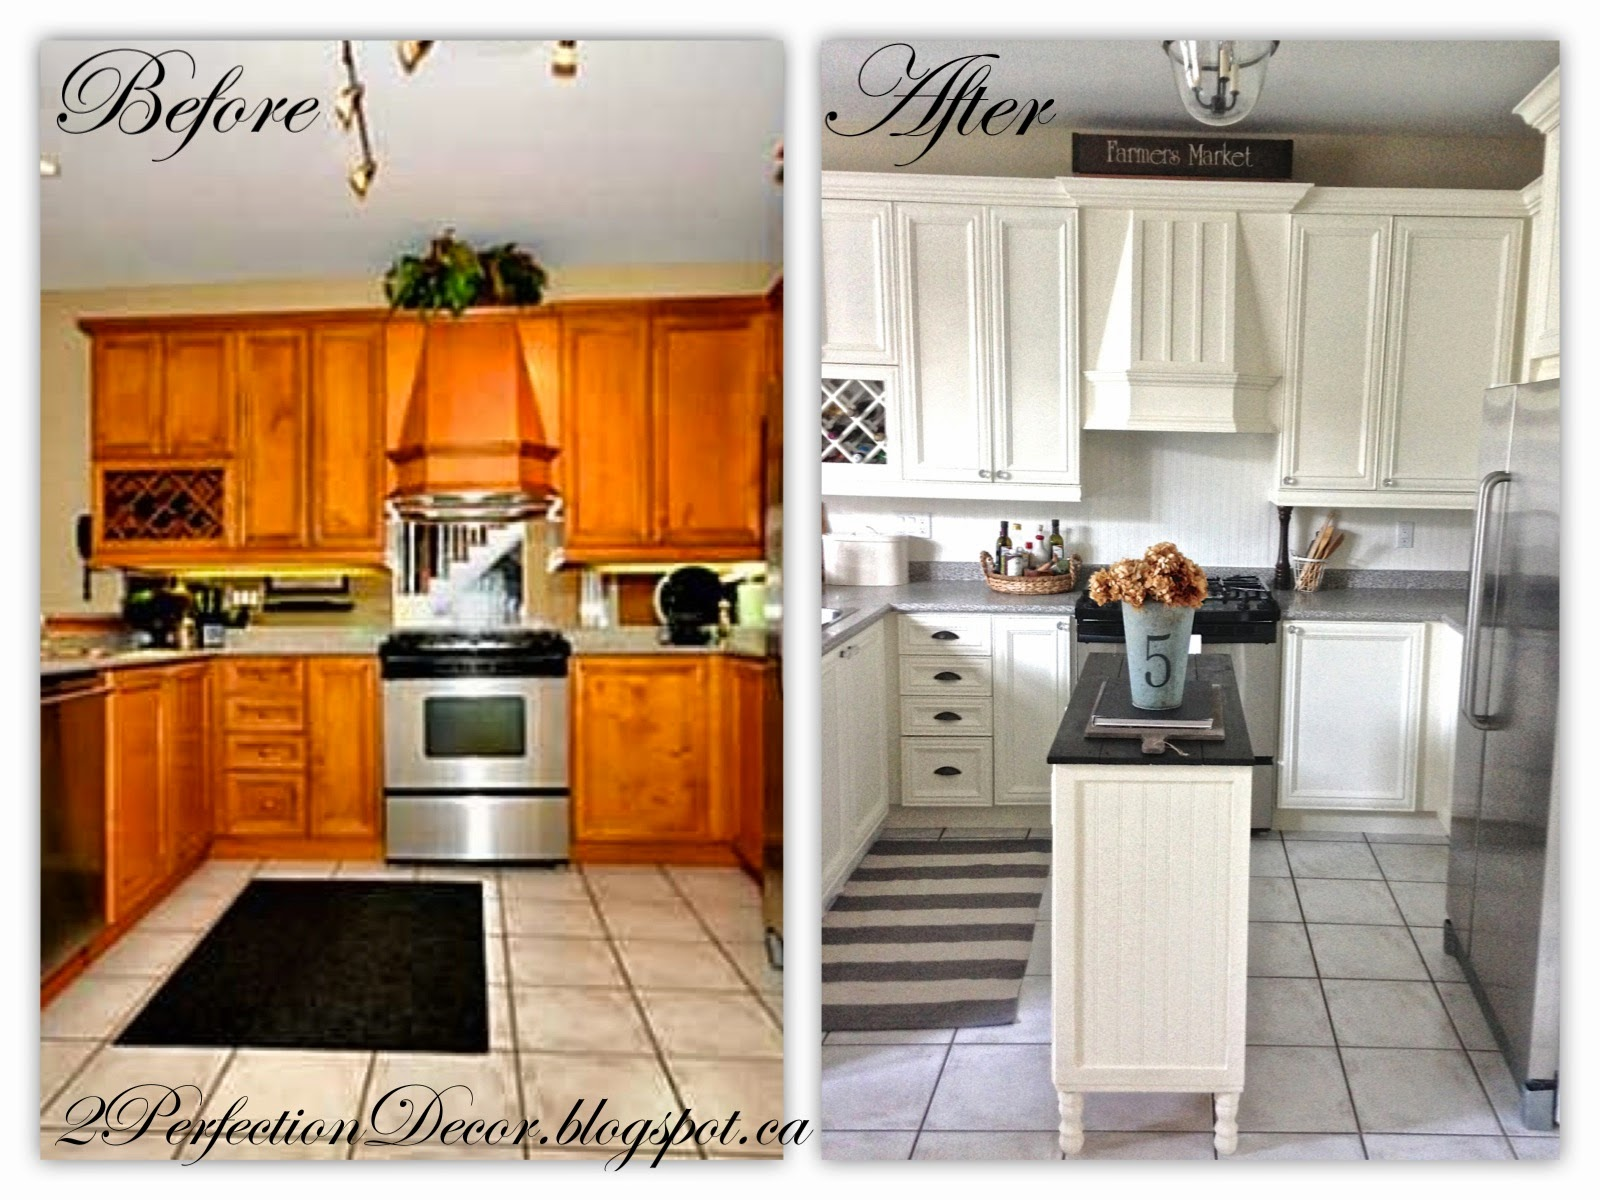 Delightful We Had All The Kitchen Cabinets Professionally Painted For $750. We Choose  Benjamin Moore Linen White, Its A Light Creamy White, Perfect For  Freshening Up ...